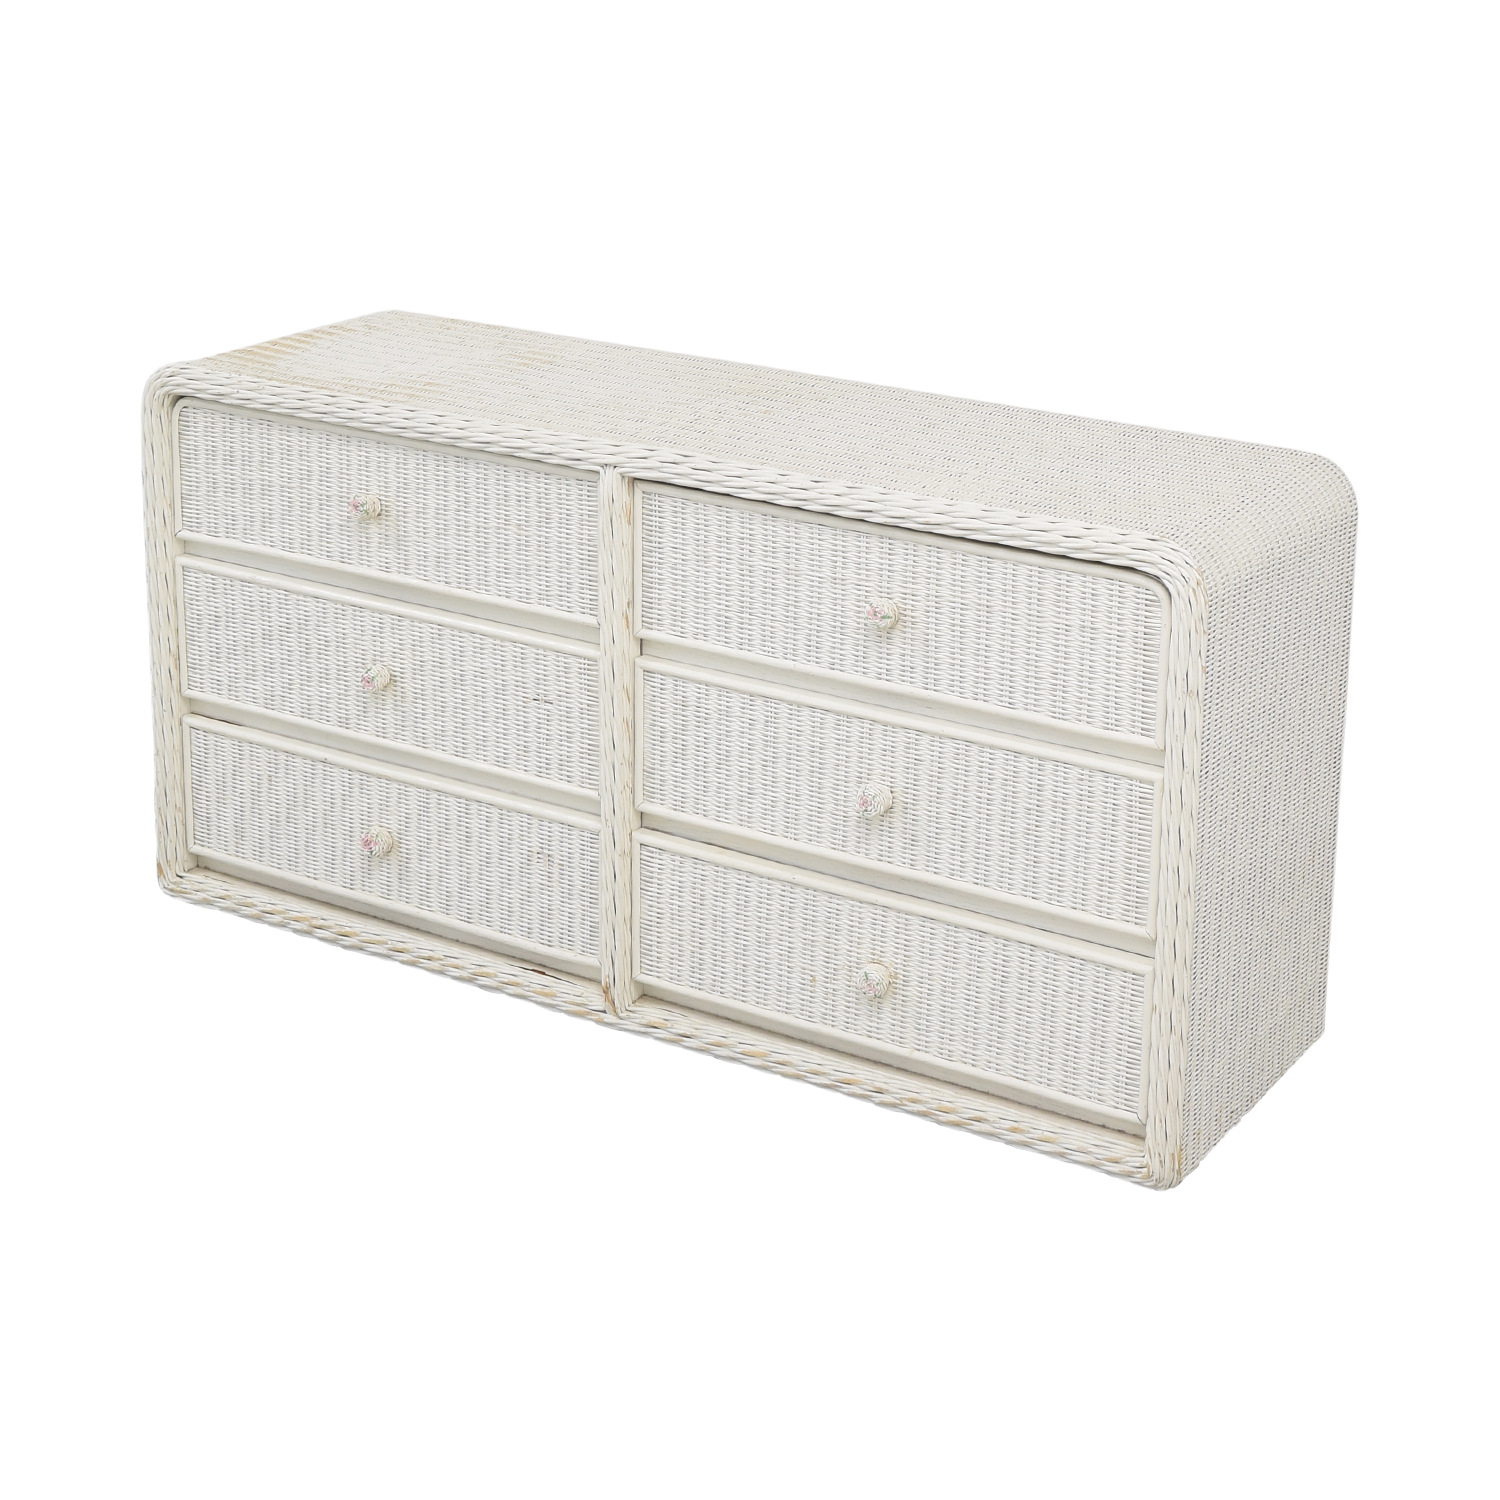 White Wicker Chest of Drawers Dressers